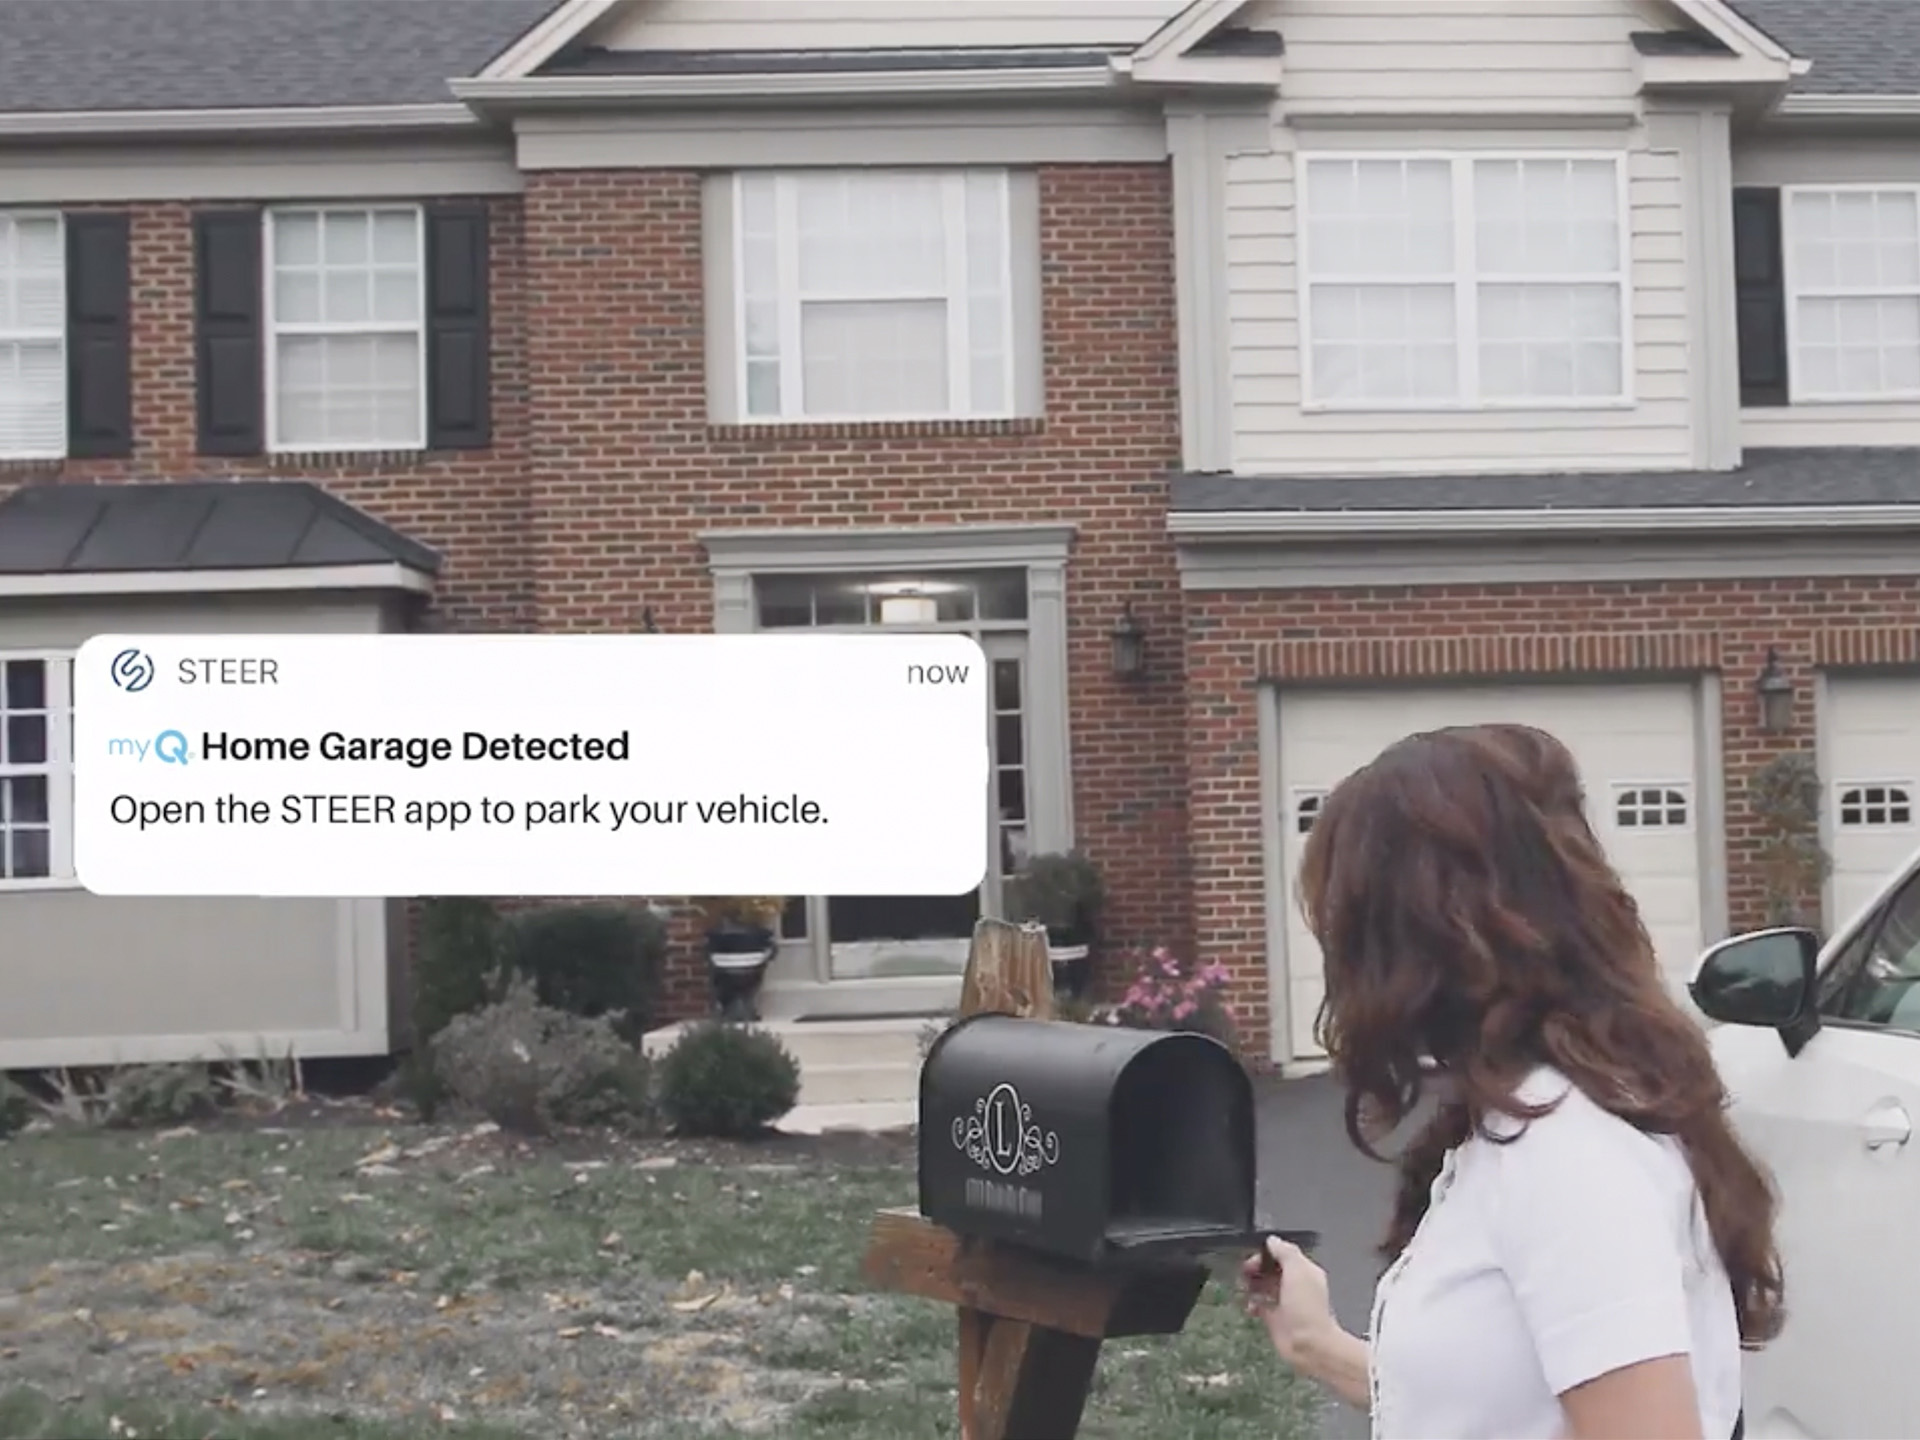 CGI's myQ® Auto™ (https://www.chamberlain.com/about-chamberlain/automotive-connectivity-solutions) solution and STEER's autonomous parking technology provides self-parking capabilities to homeowners with a myQ smart garage.